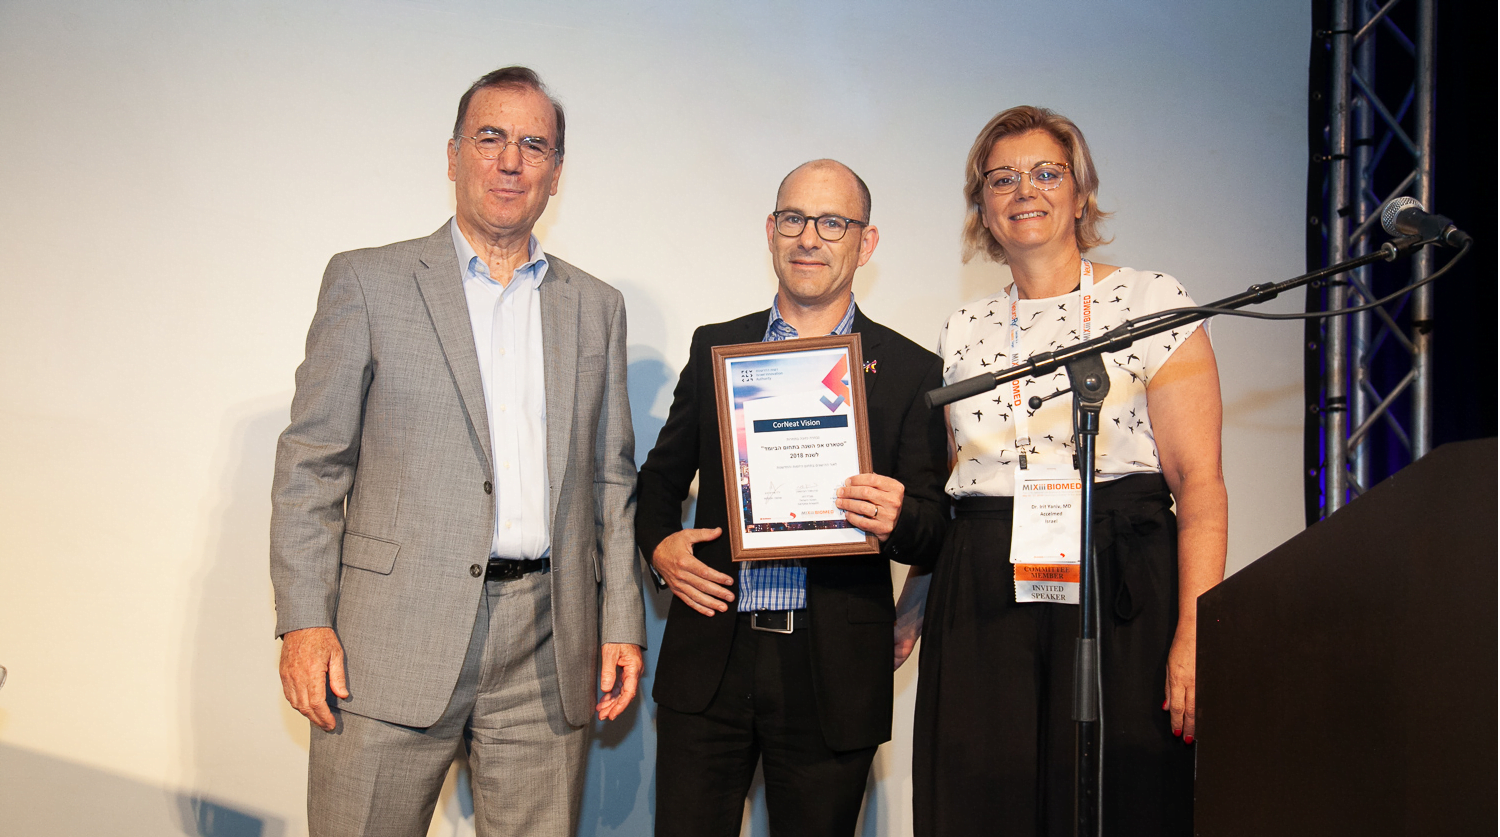 Dr. Ami Appelbaum, chairman of the Israel Innovation Authority (l) and Dr. Irit Yaniv of Accelmed stand with winner Dr. Gilad Litvin chief medical Officer for CorNeat Vision. Photo via Alexander Elman